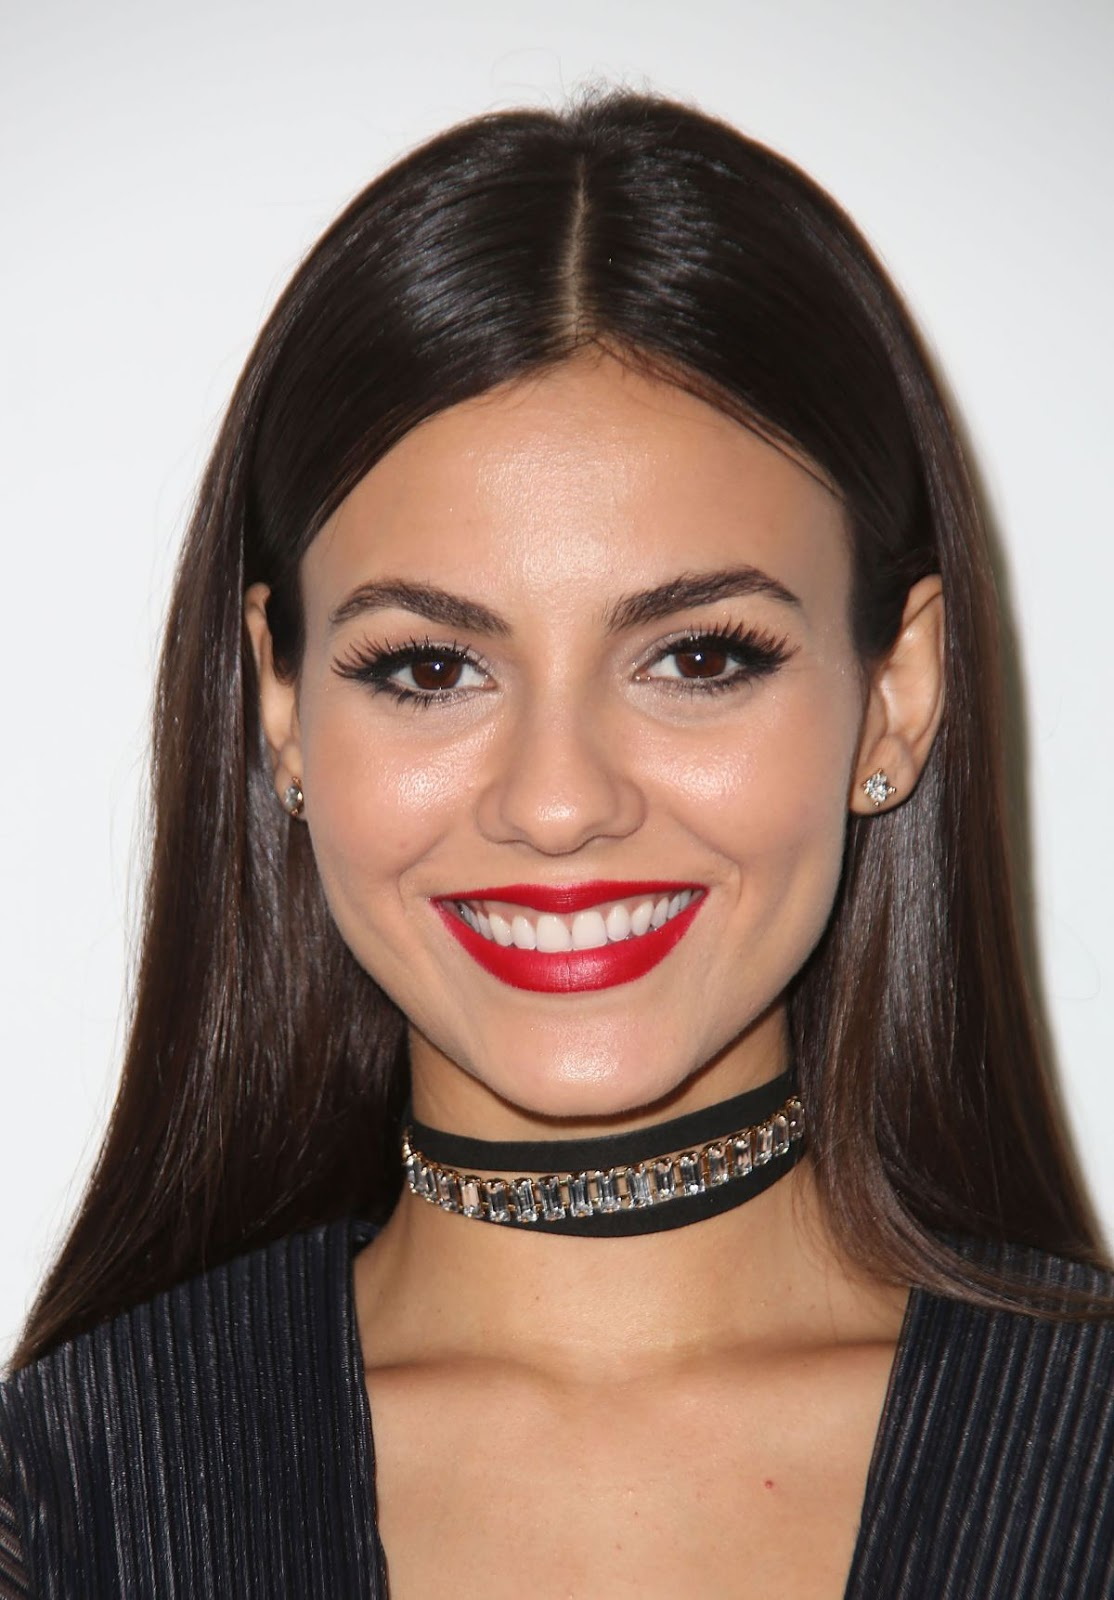 HQ Photo of Victoria Justice At Pamella Roland Fashion Show In New York